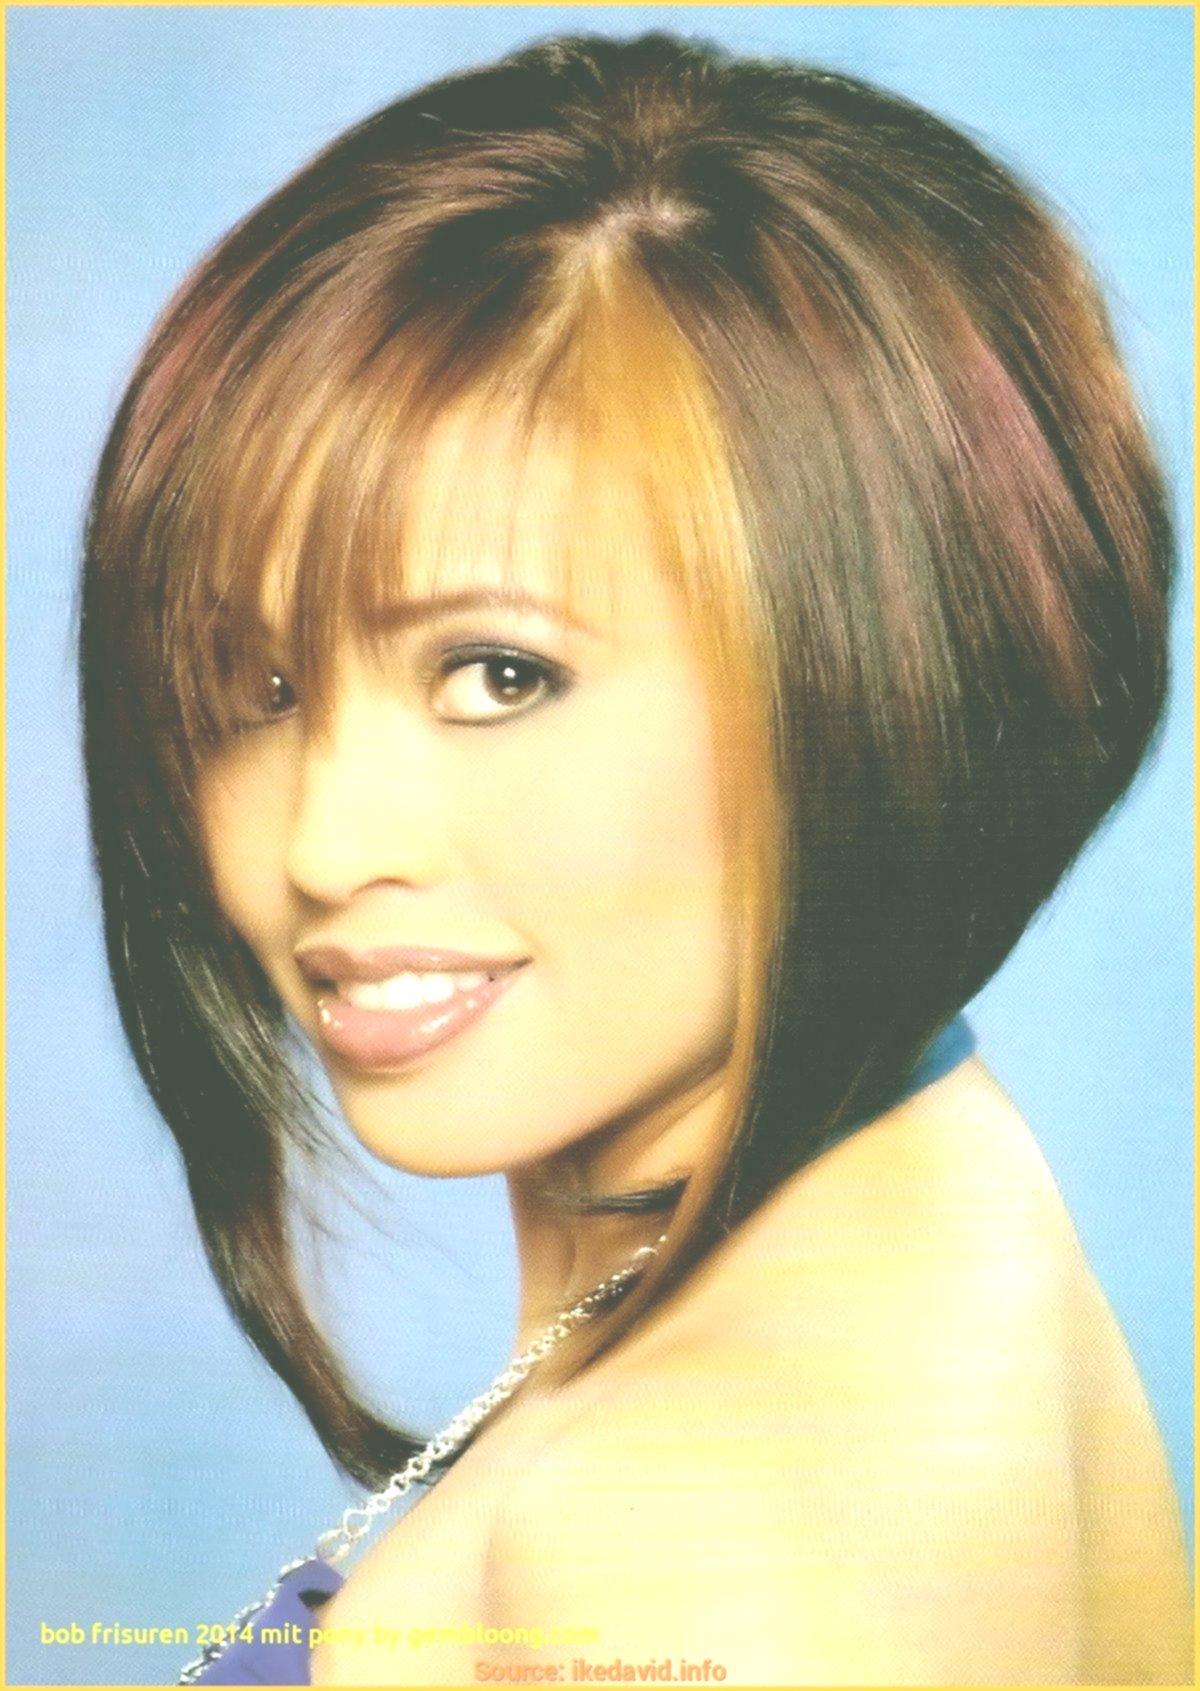 finest ladies hairstyles bob plan-finest womens hairstyles bob photography